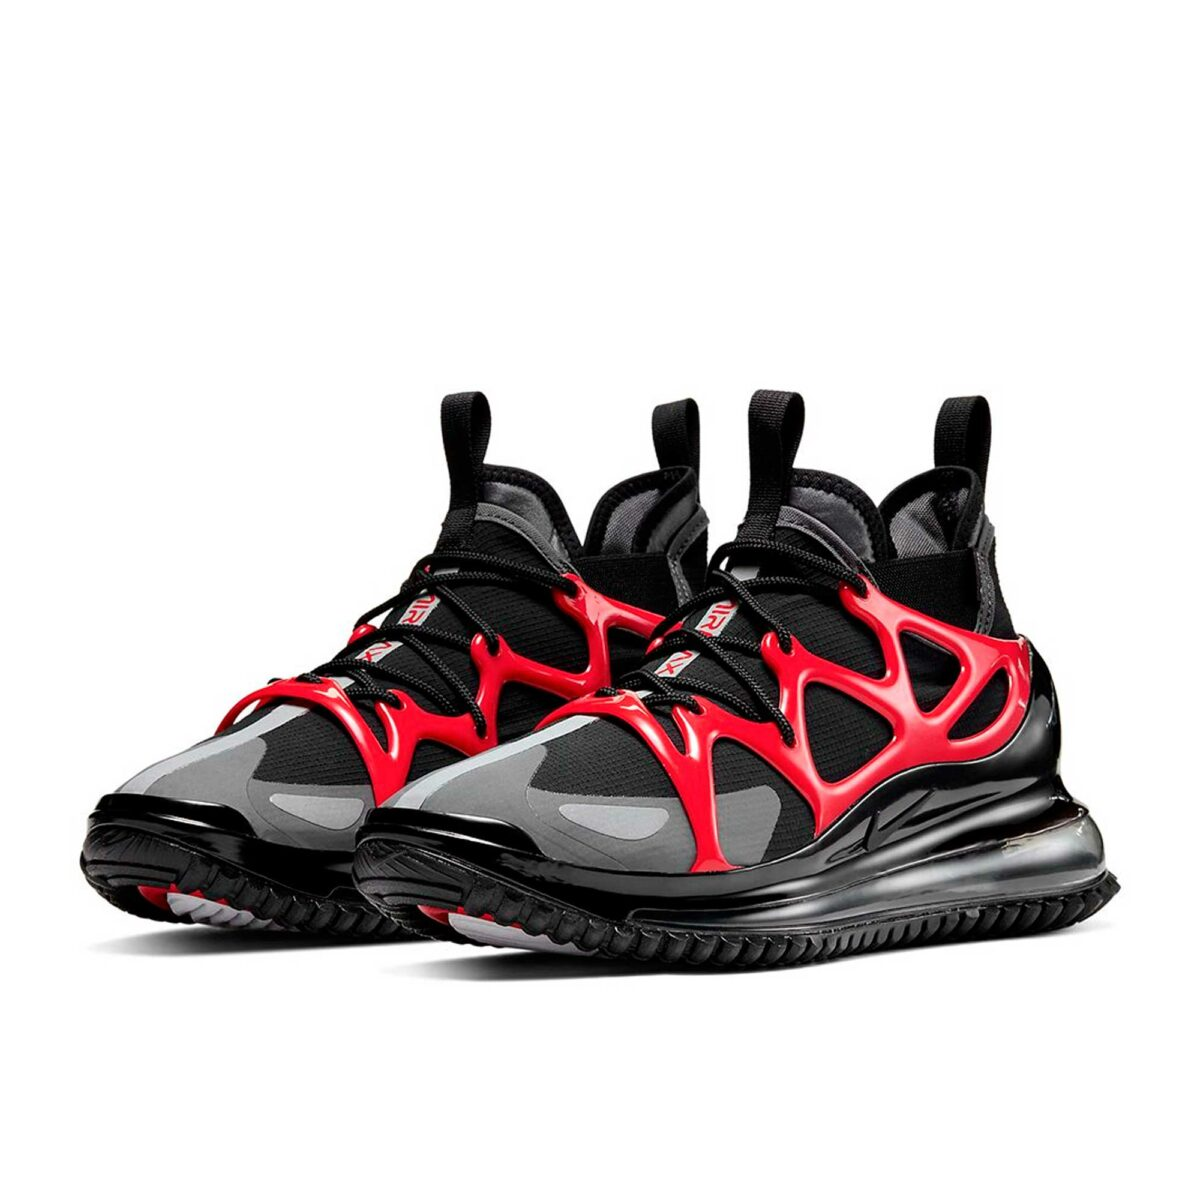 nike air max 720 horizon black red BQ5808_006 купить